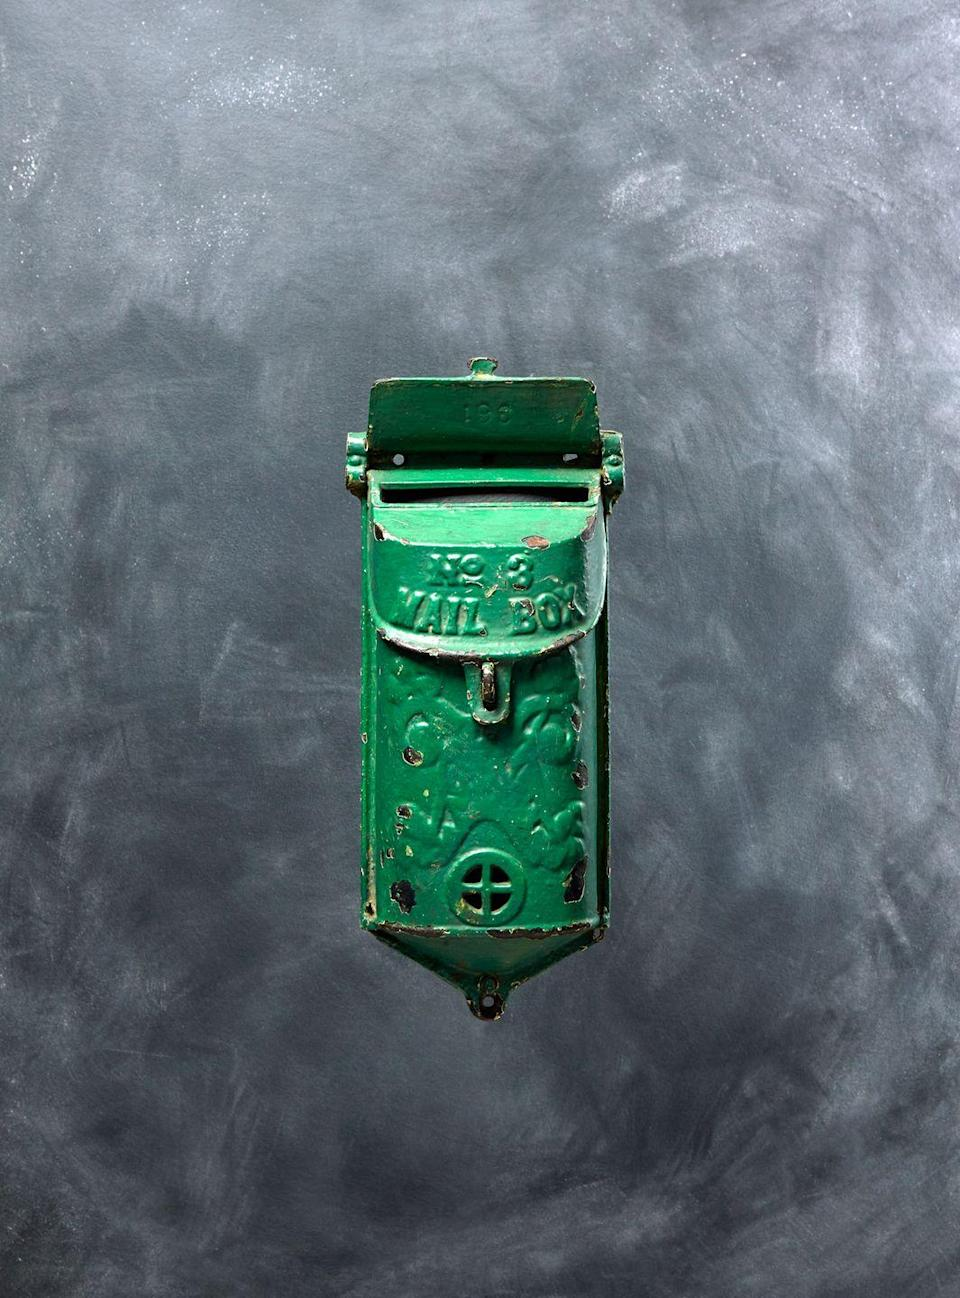 <p>This early-20th-century mailbox carries cachet because it was produced by Griswold, one of the most sought-after makers of cast iron. In operation from 1865 until 1957, the company specialized in cookware, but ardent cast-iron collectors are interested in all forms. This No. 3 mailbox from 1910 is no exception. Unpainted examples are valued at $350; because this one bears an unoriginal, though eye-catching, green paint job, its value is considerably less, says Marsha Dixey of Heritage Auctions. </p><p><strong>What it's worth:</strong> $125</p>